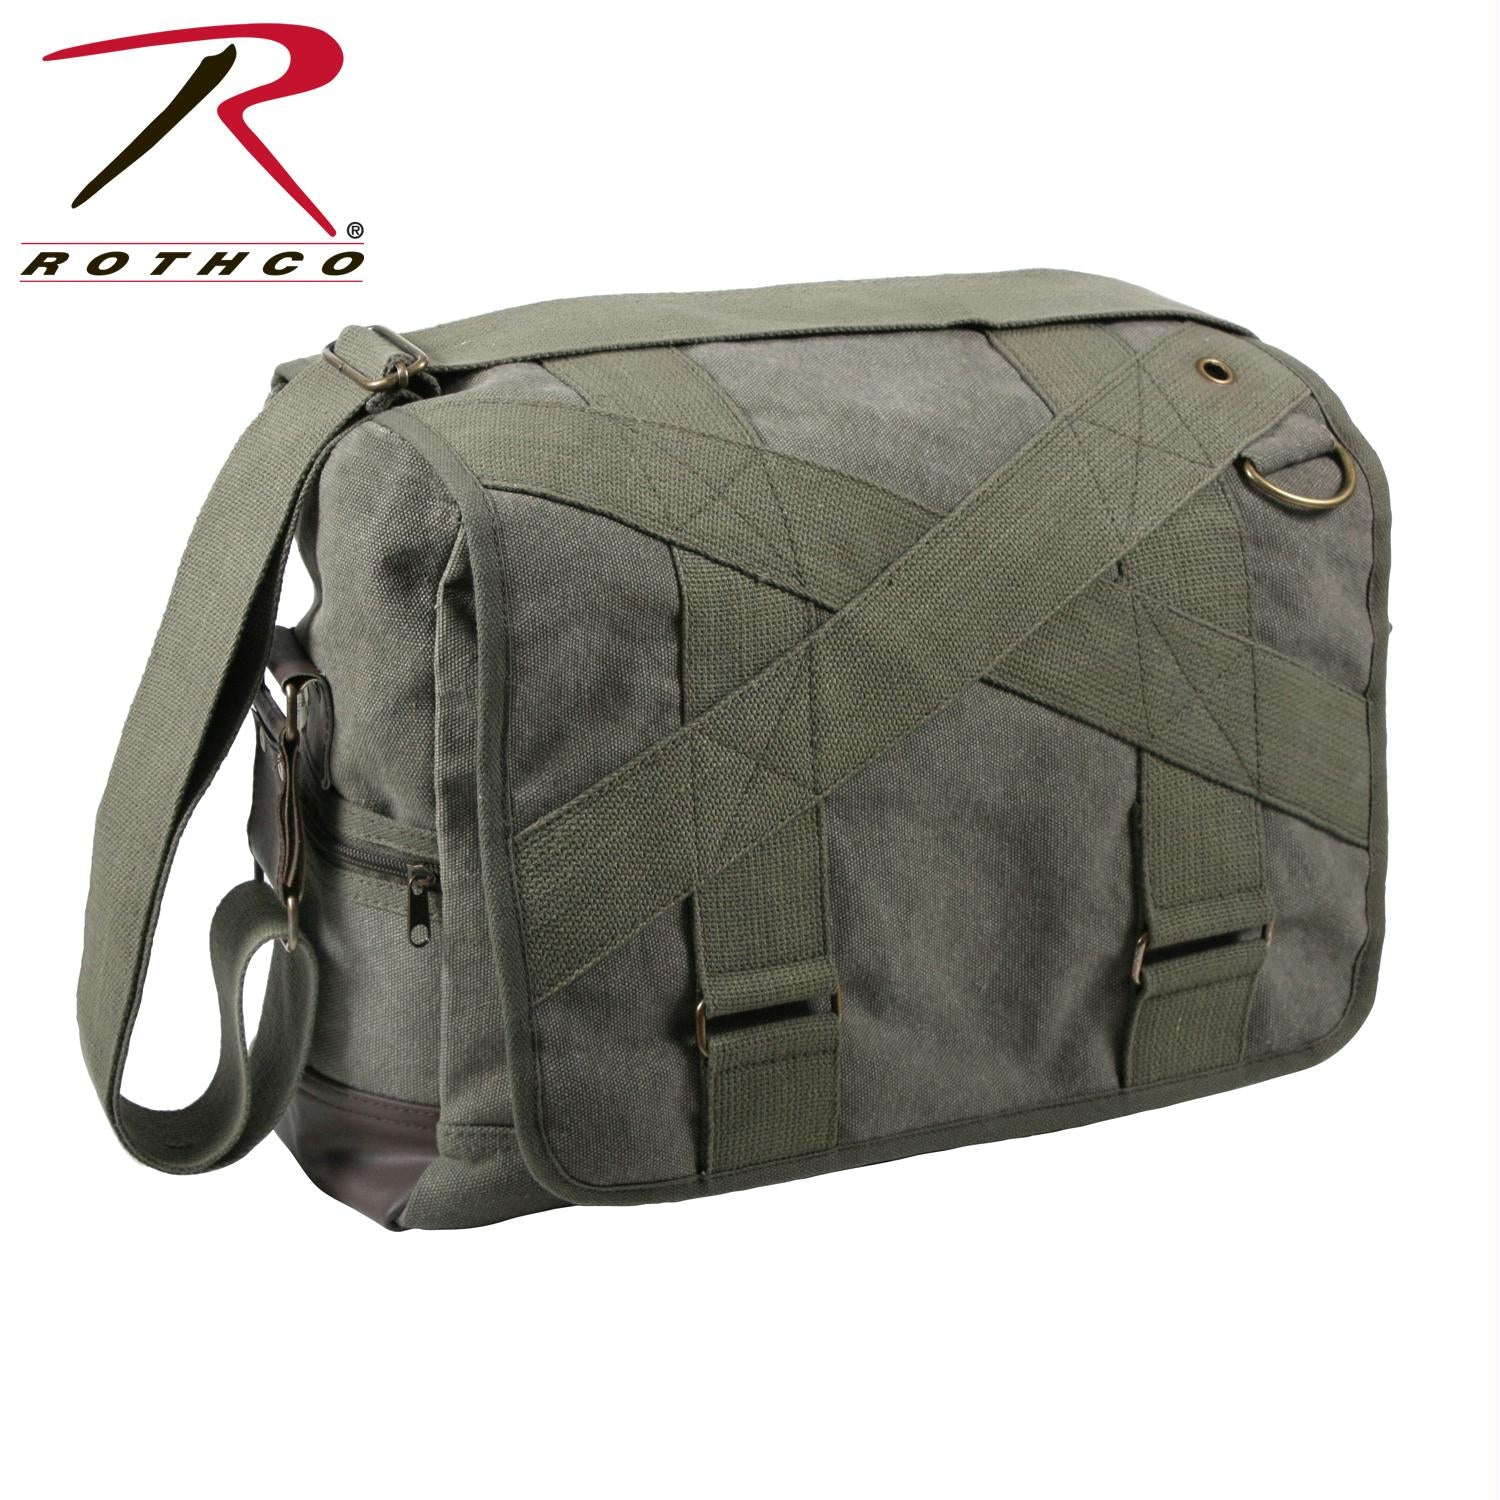 Rothco Vintage Canvas Outback Messenger Bag - Olive Drab